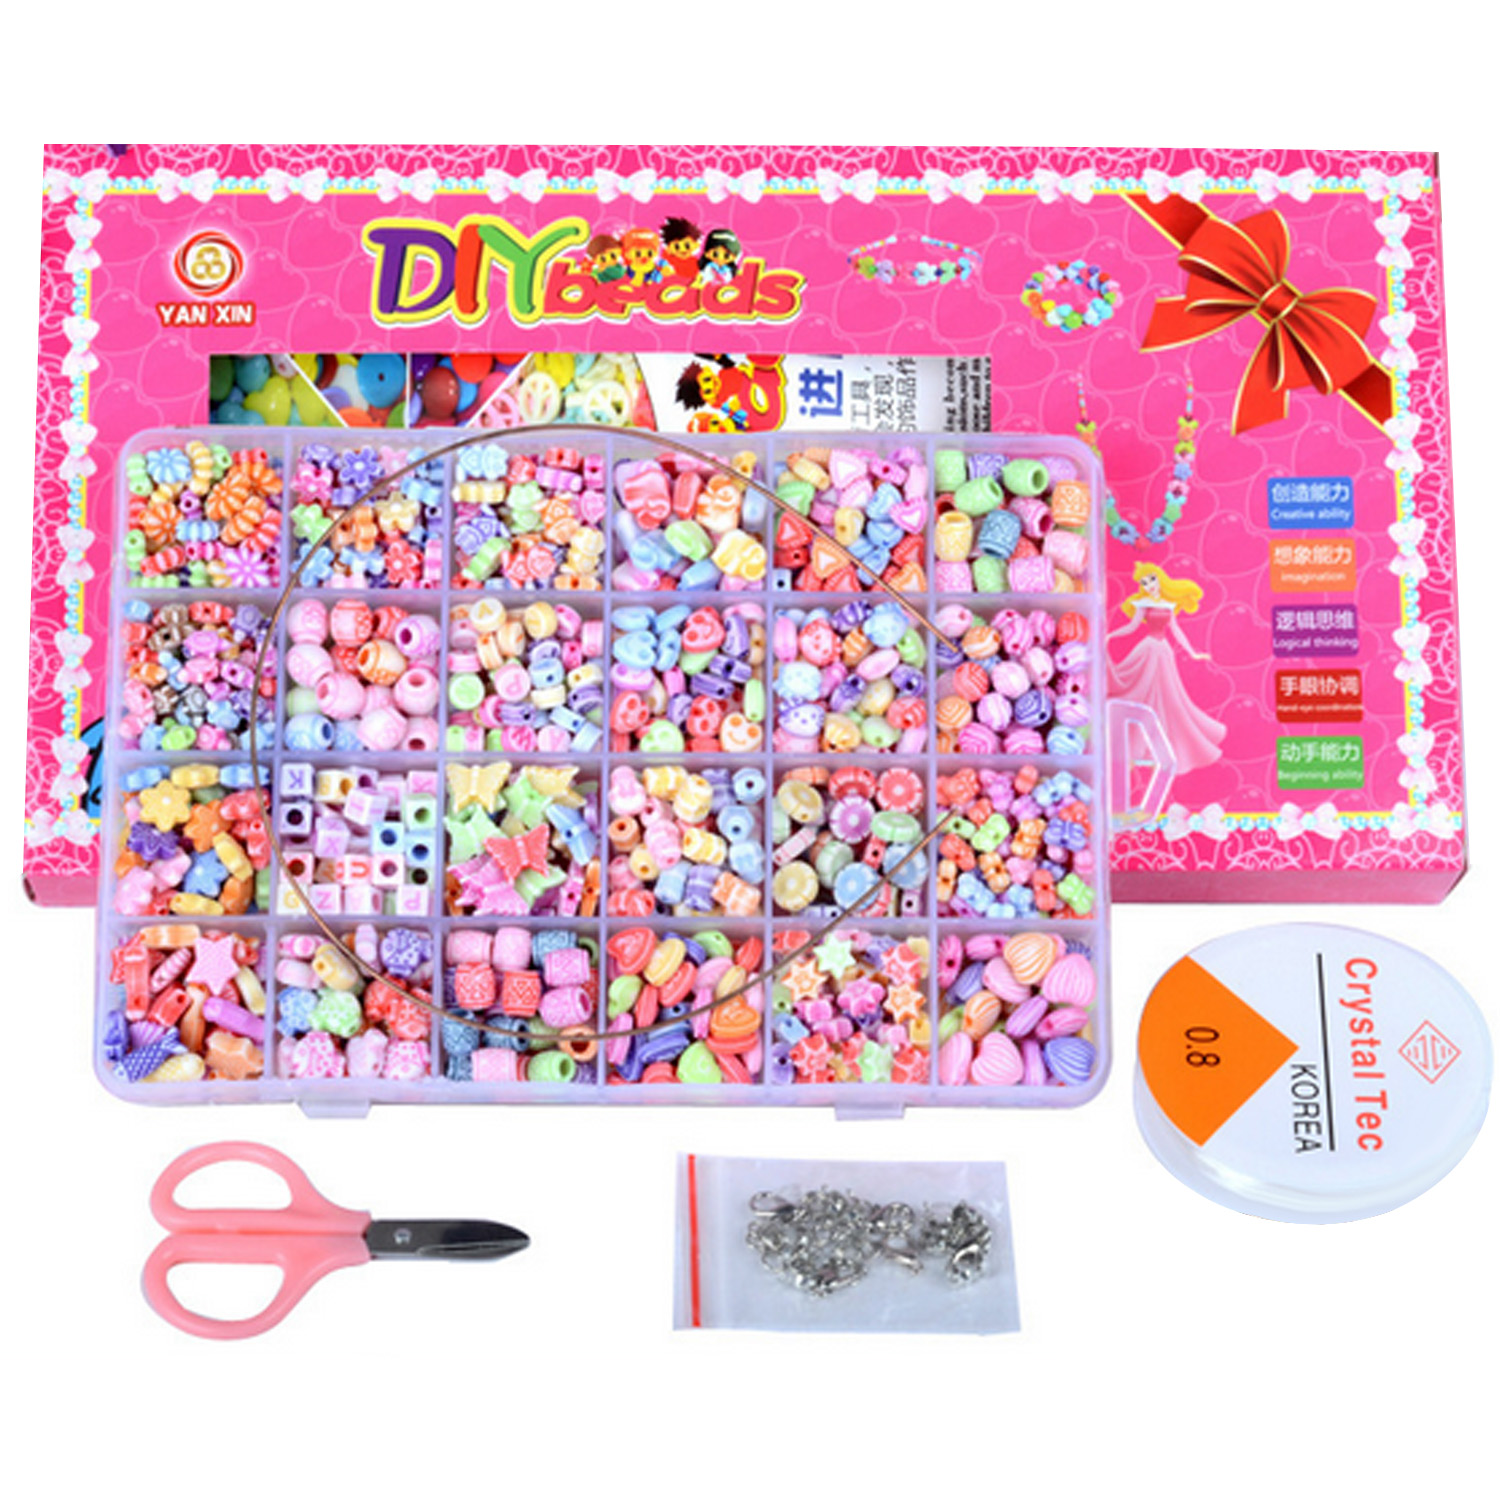 Besegad 1000Pcs Colorful Funny Jewelry DIY Beads Set Kit with Scissors Elastic Rope Open Rings Lobster Clasps Kids Manual Toys